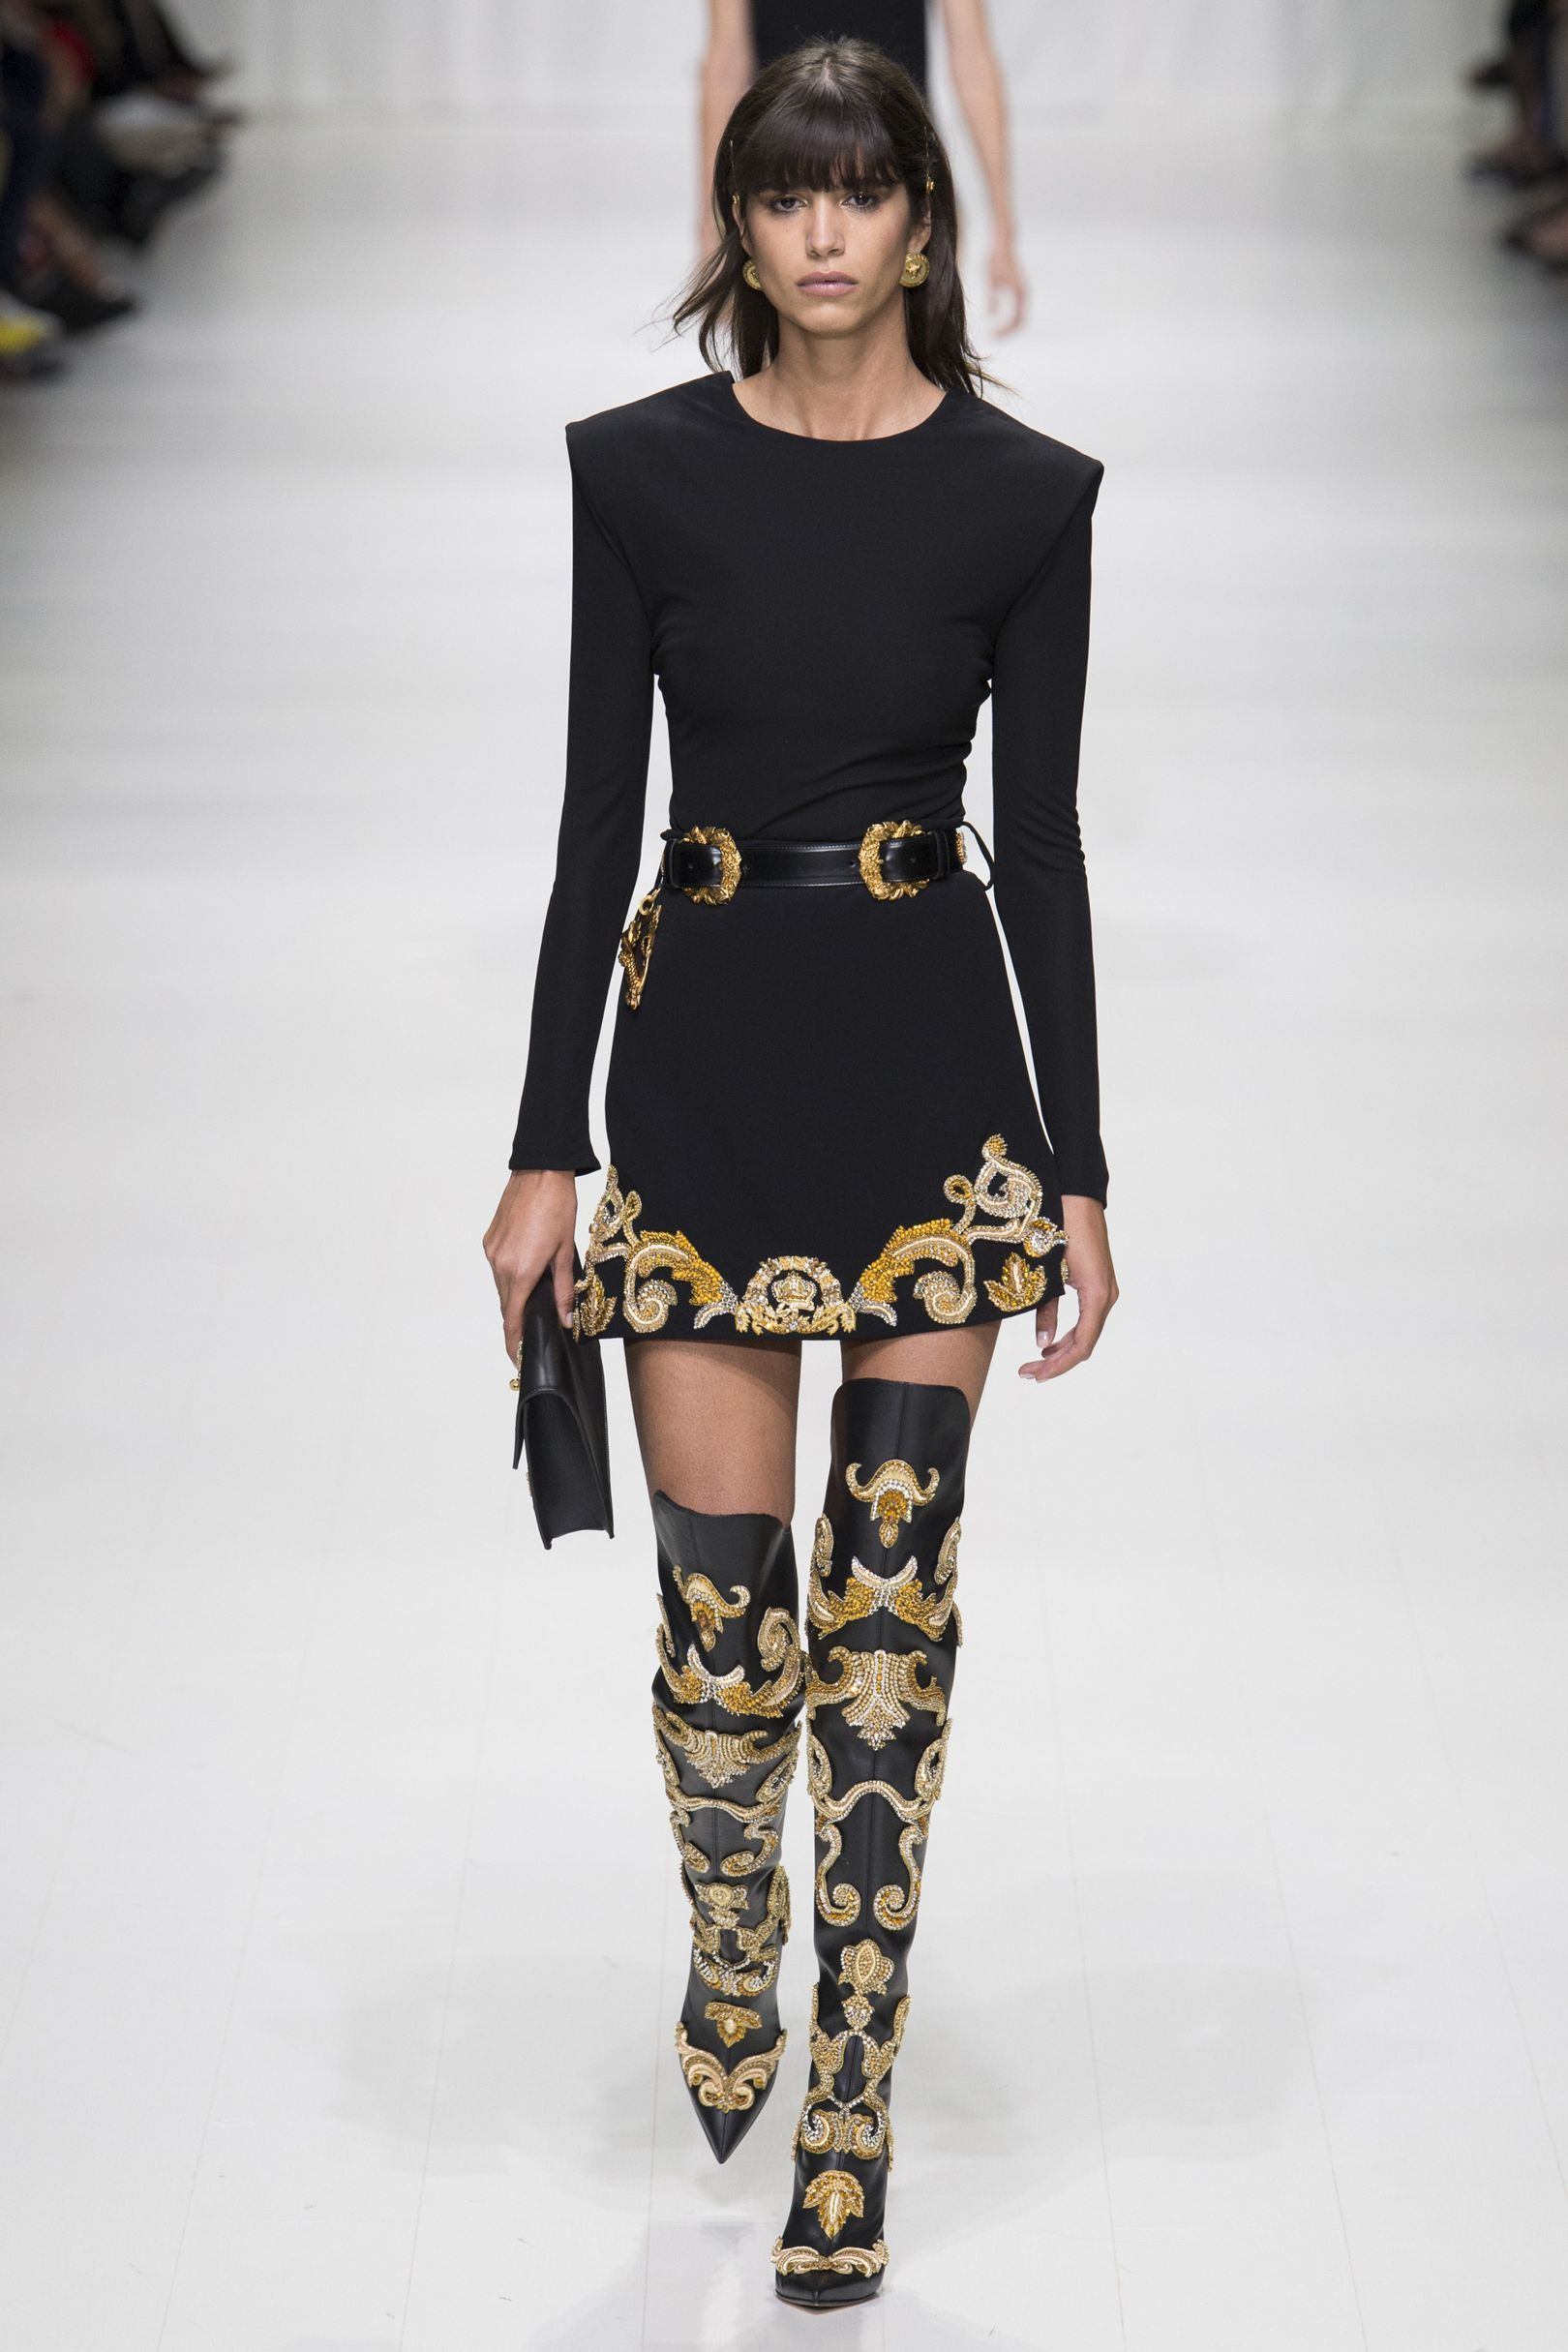 5353378112e Versace - Stunning long sleeve black dress with ornate gilded hem    fabulous over the knee boots with matching pattern  chicAF...x